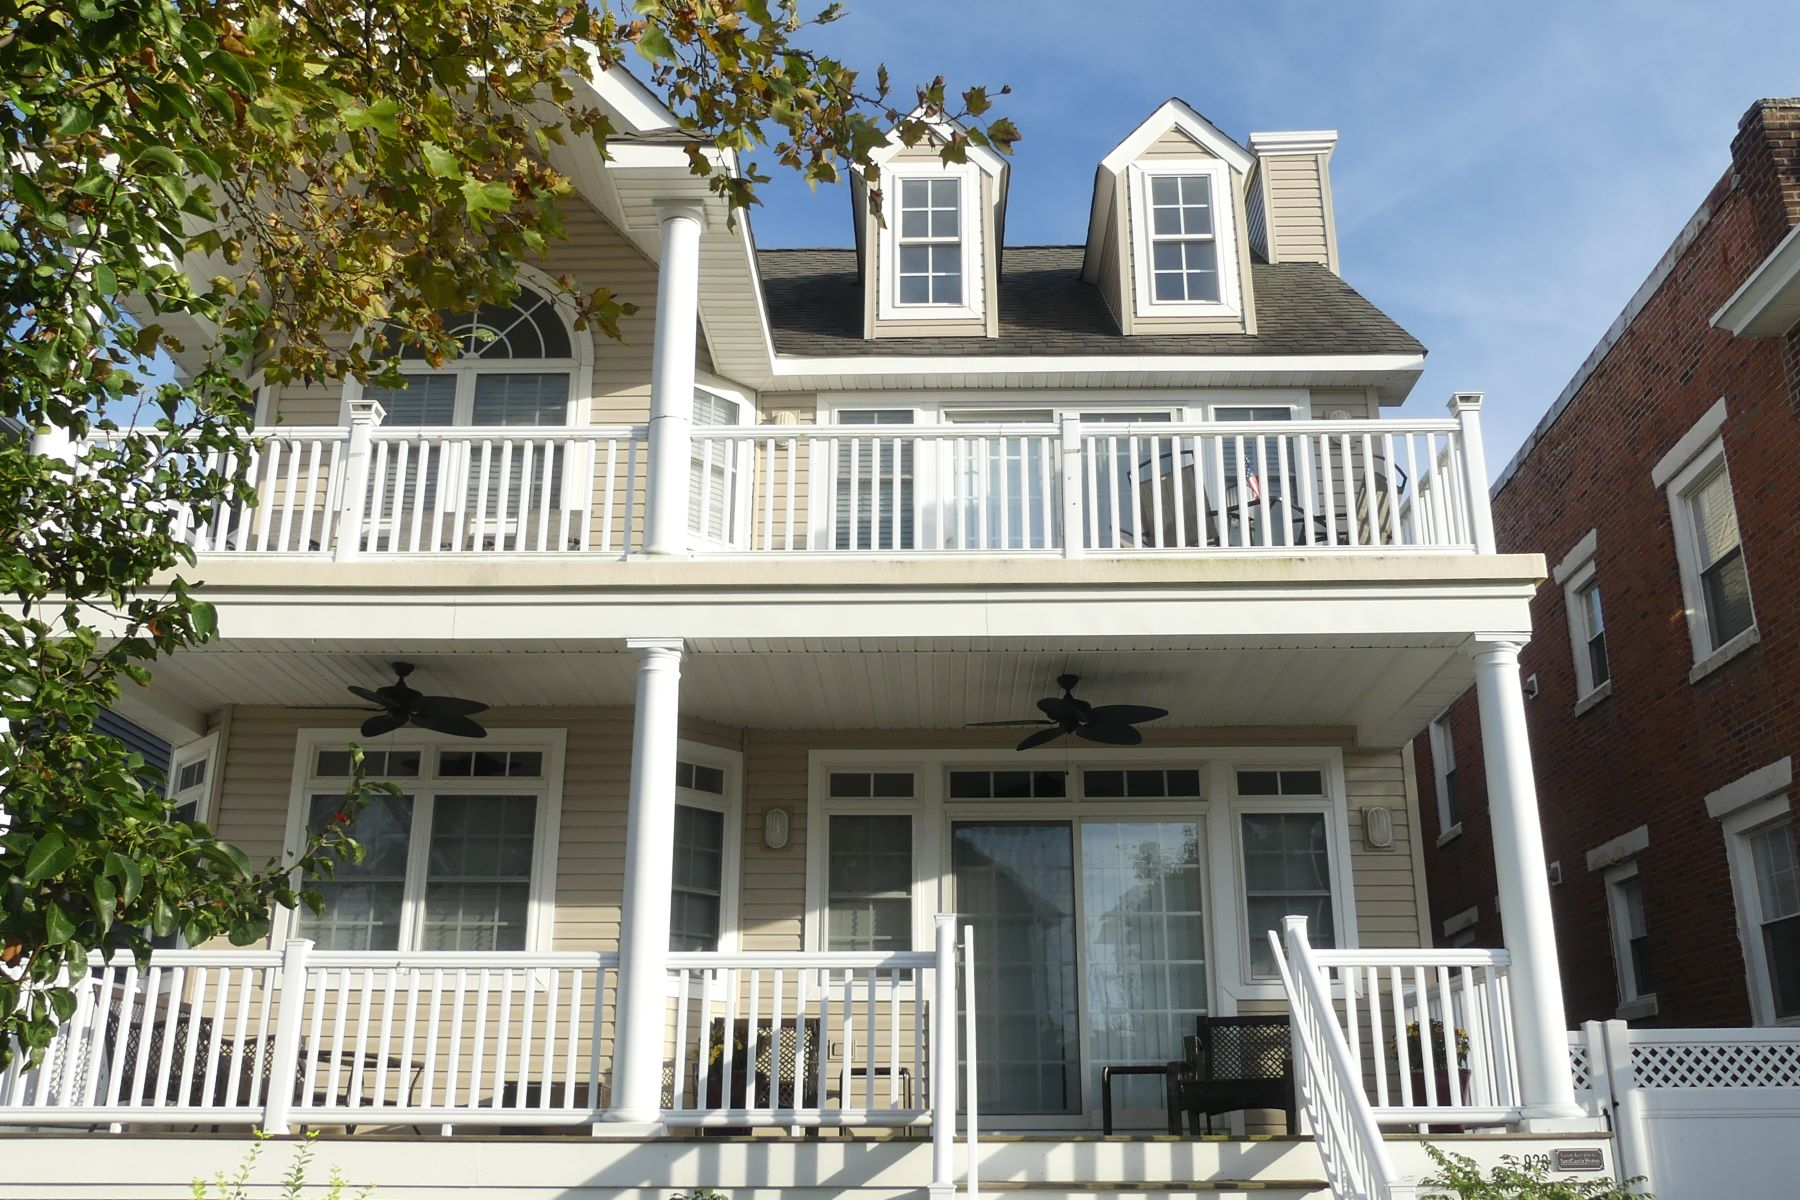 Condominiums for Sale at 2nd Floor Central Avenue Condo 923 Central Avenue Unit 2 Ocean City, New Jersey 08226 United States